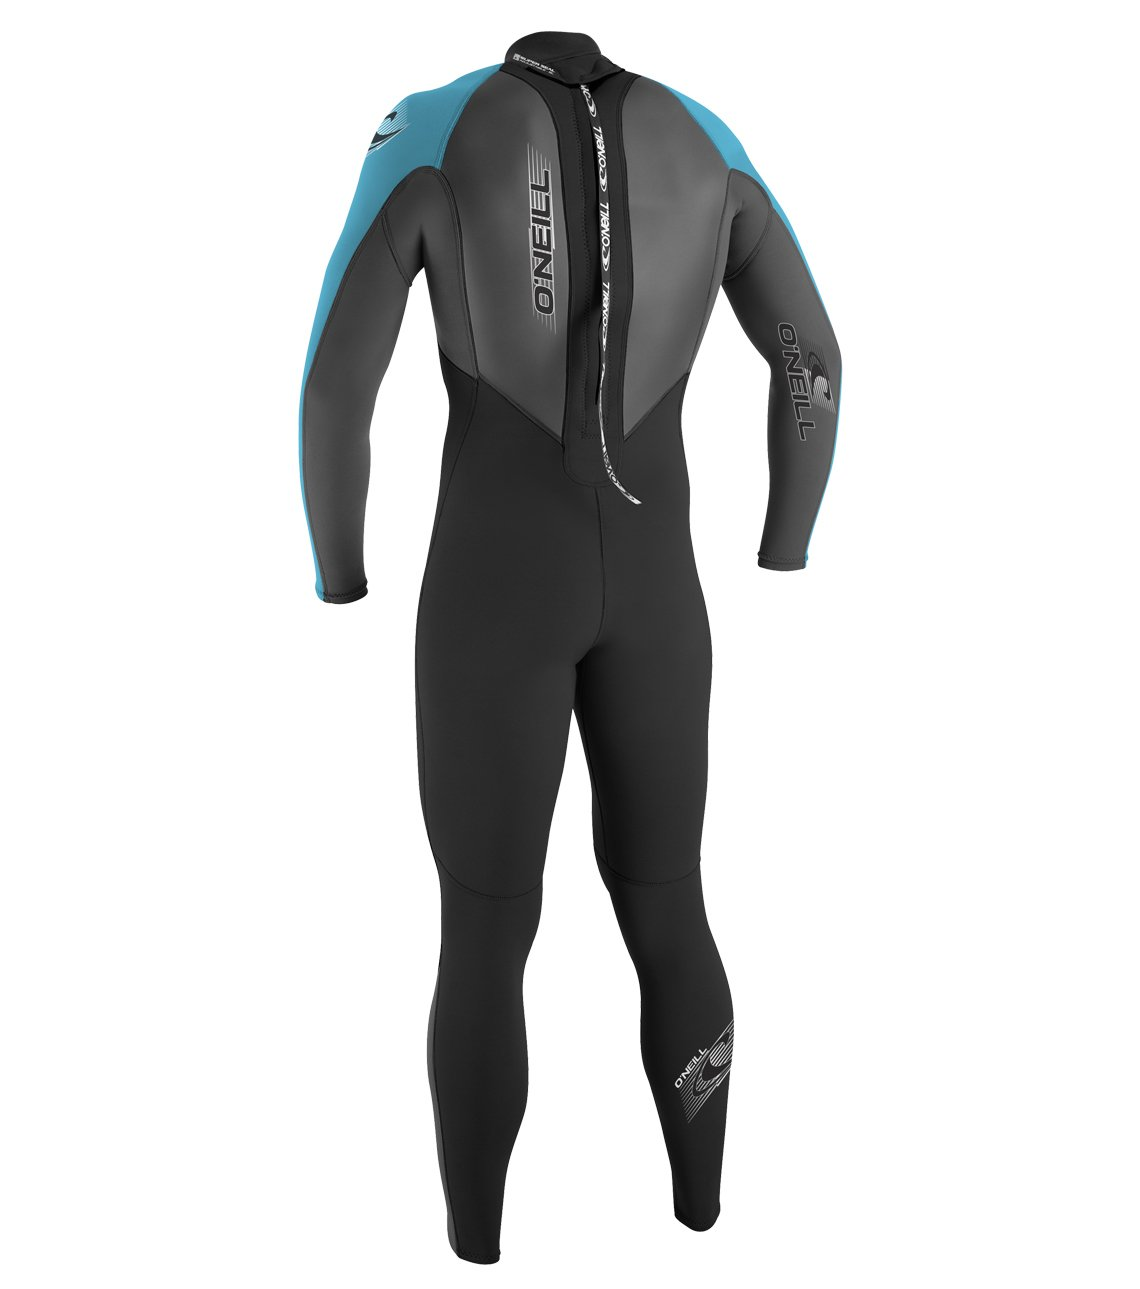 O'Neill Youth Reactor 3/2mm Back Zip Full Wetsuit, Black/Graphite/Turquoise, 12 by O'Neill Wetsuits (Image #2)